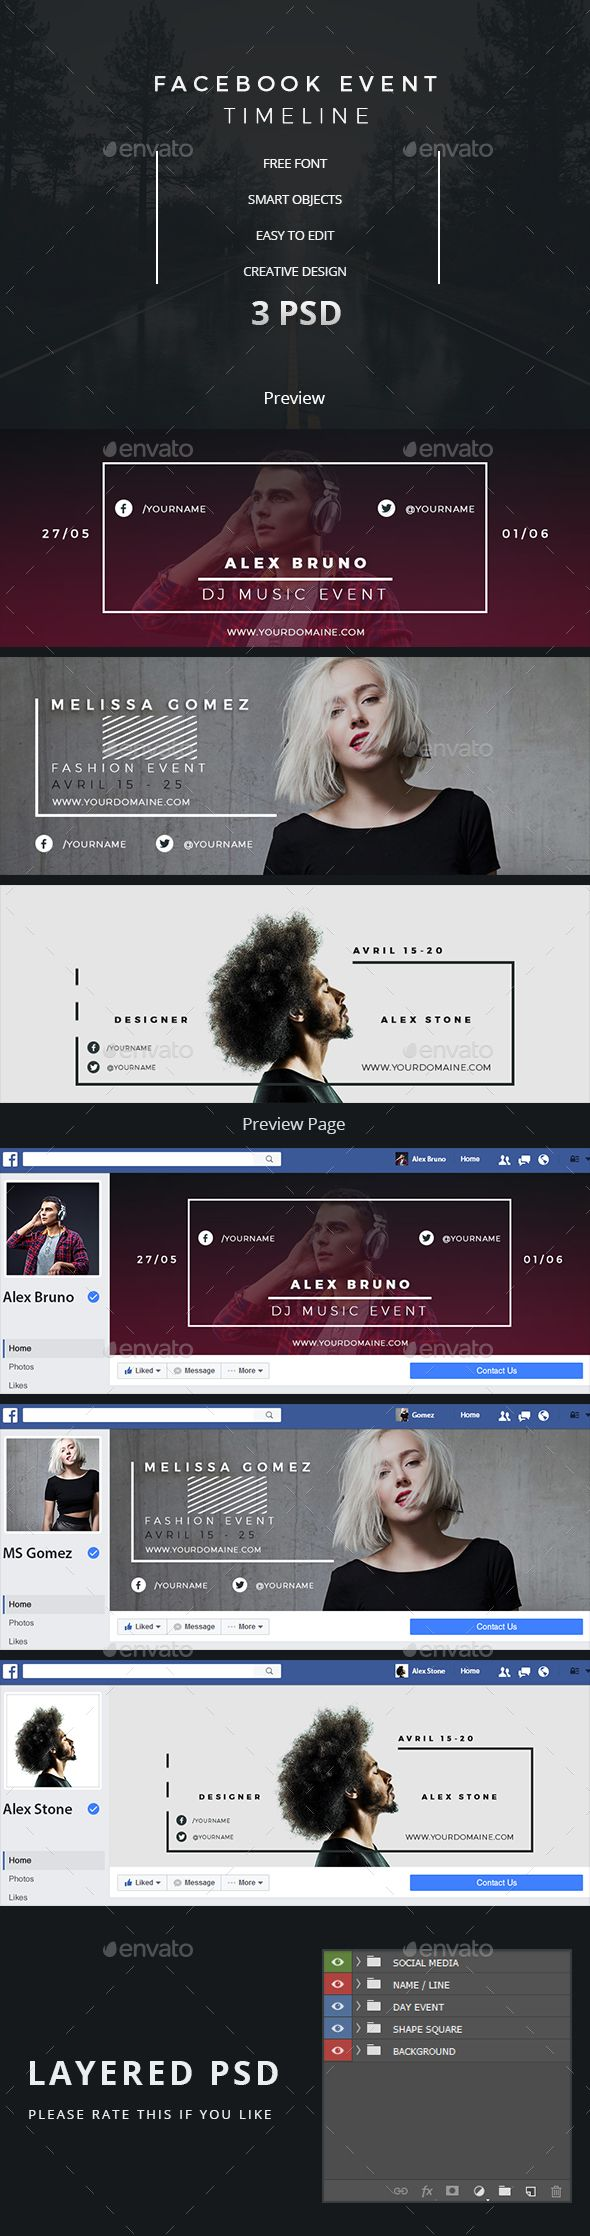 Best 25 facebook cover design ideas on pinterest facebook facebook event timeline pronofoot35fo Choice Image